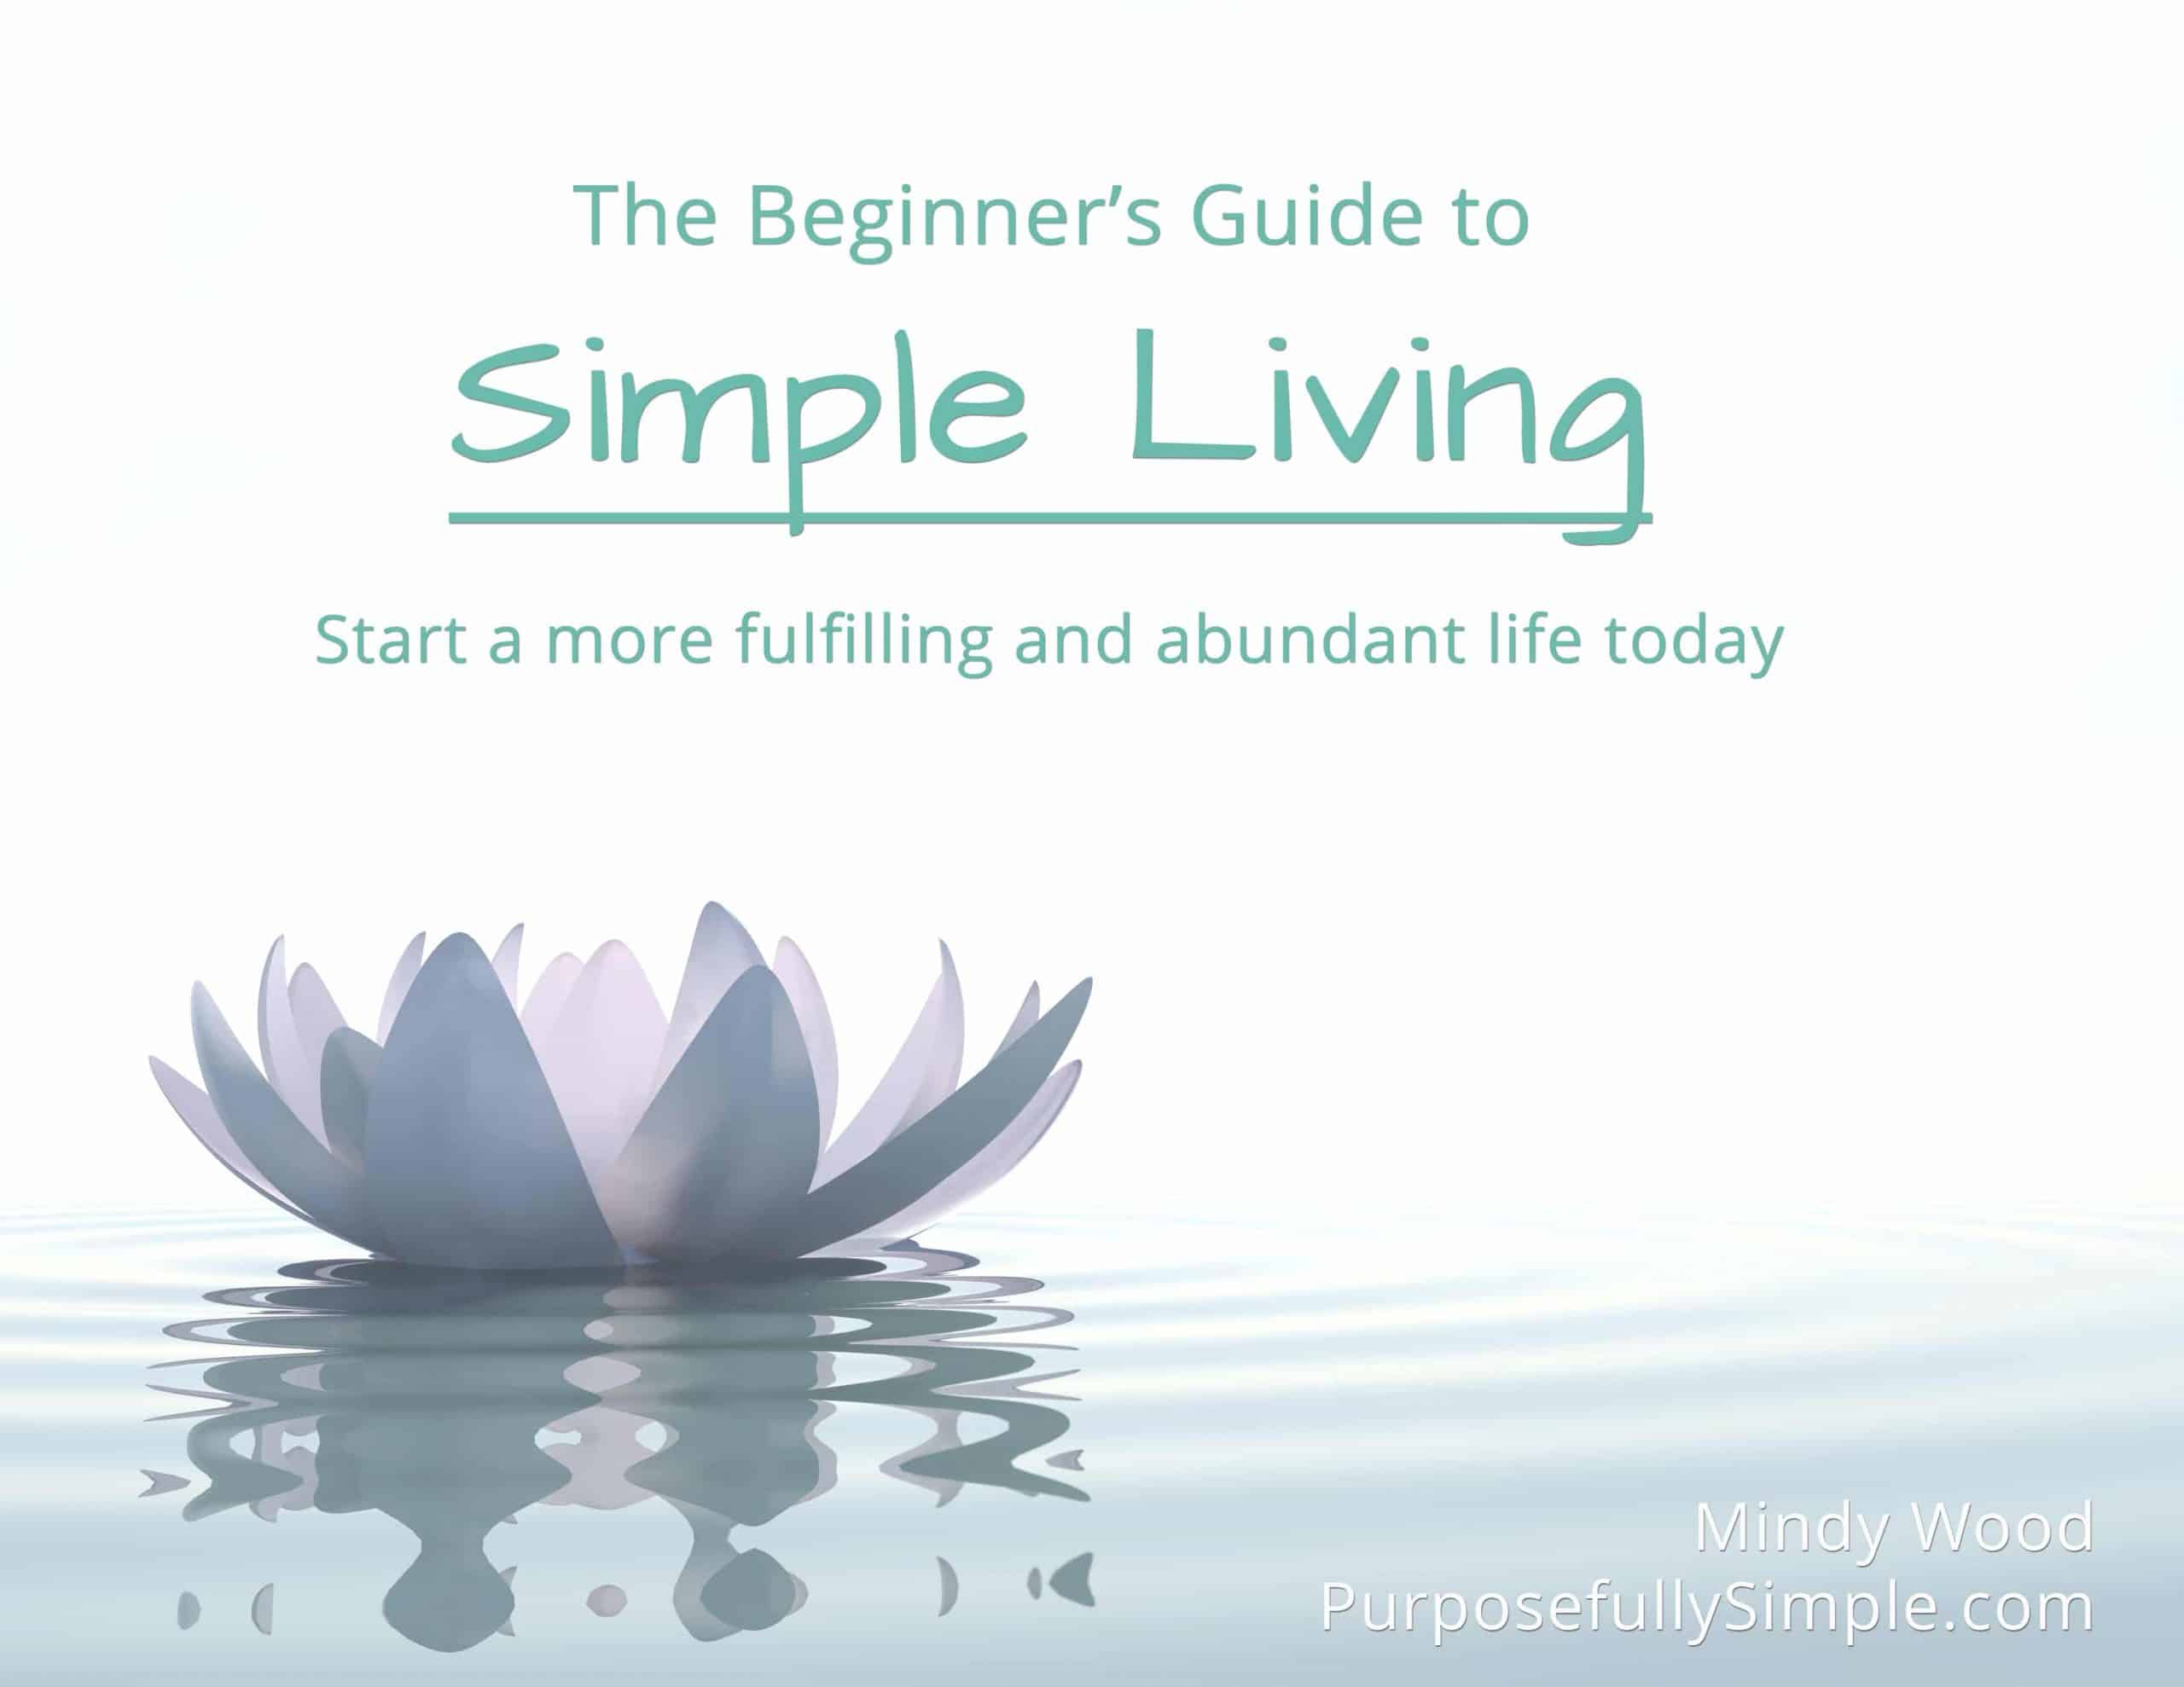 The Beginner's Guide to Simple Living (Free!)